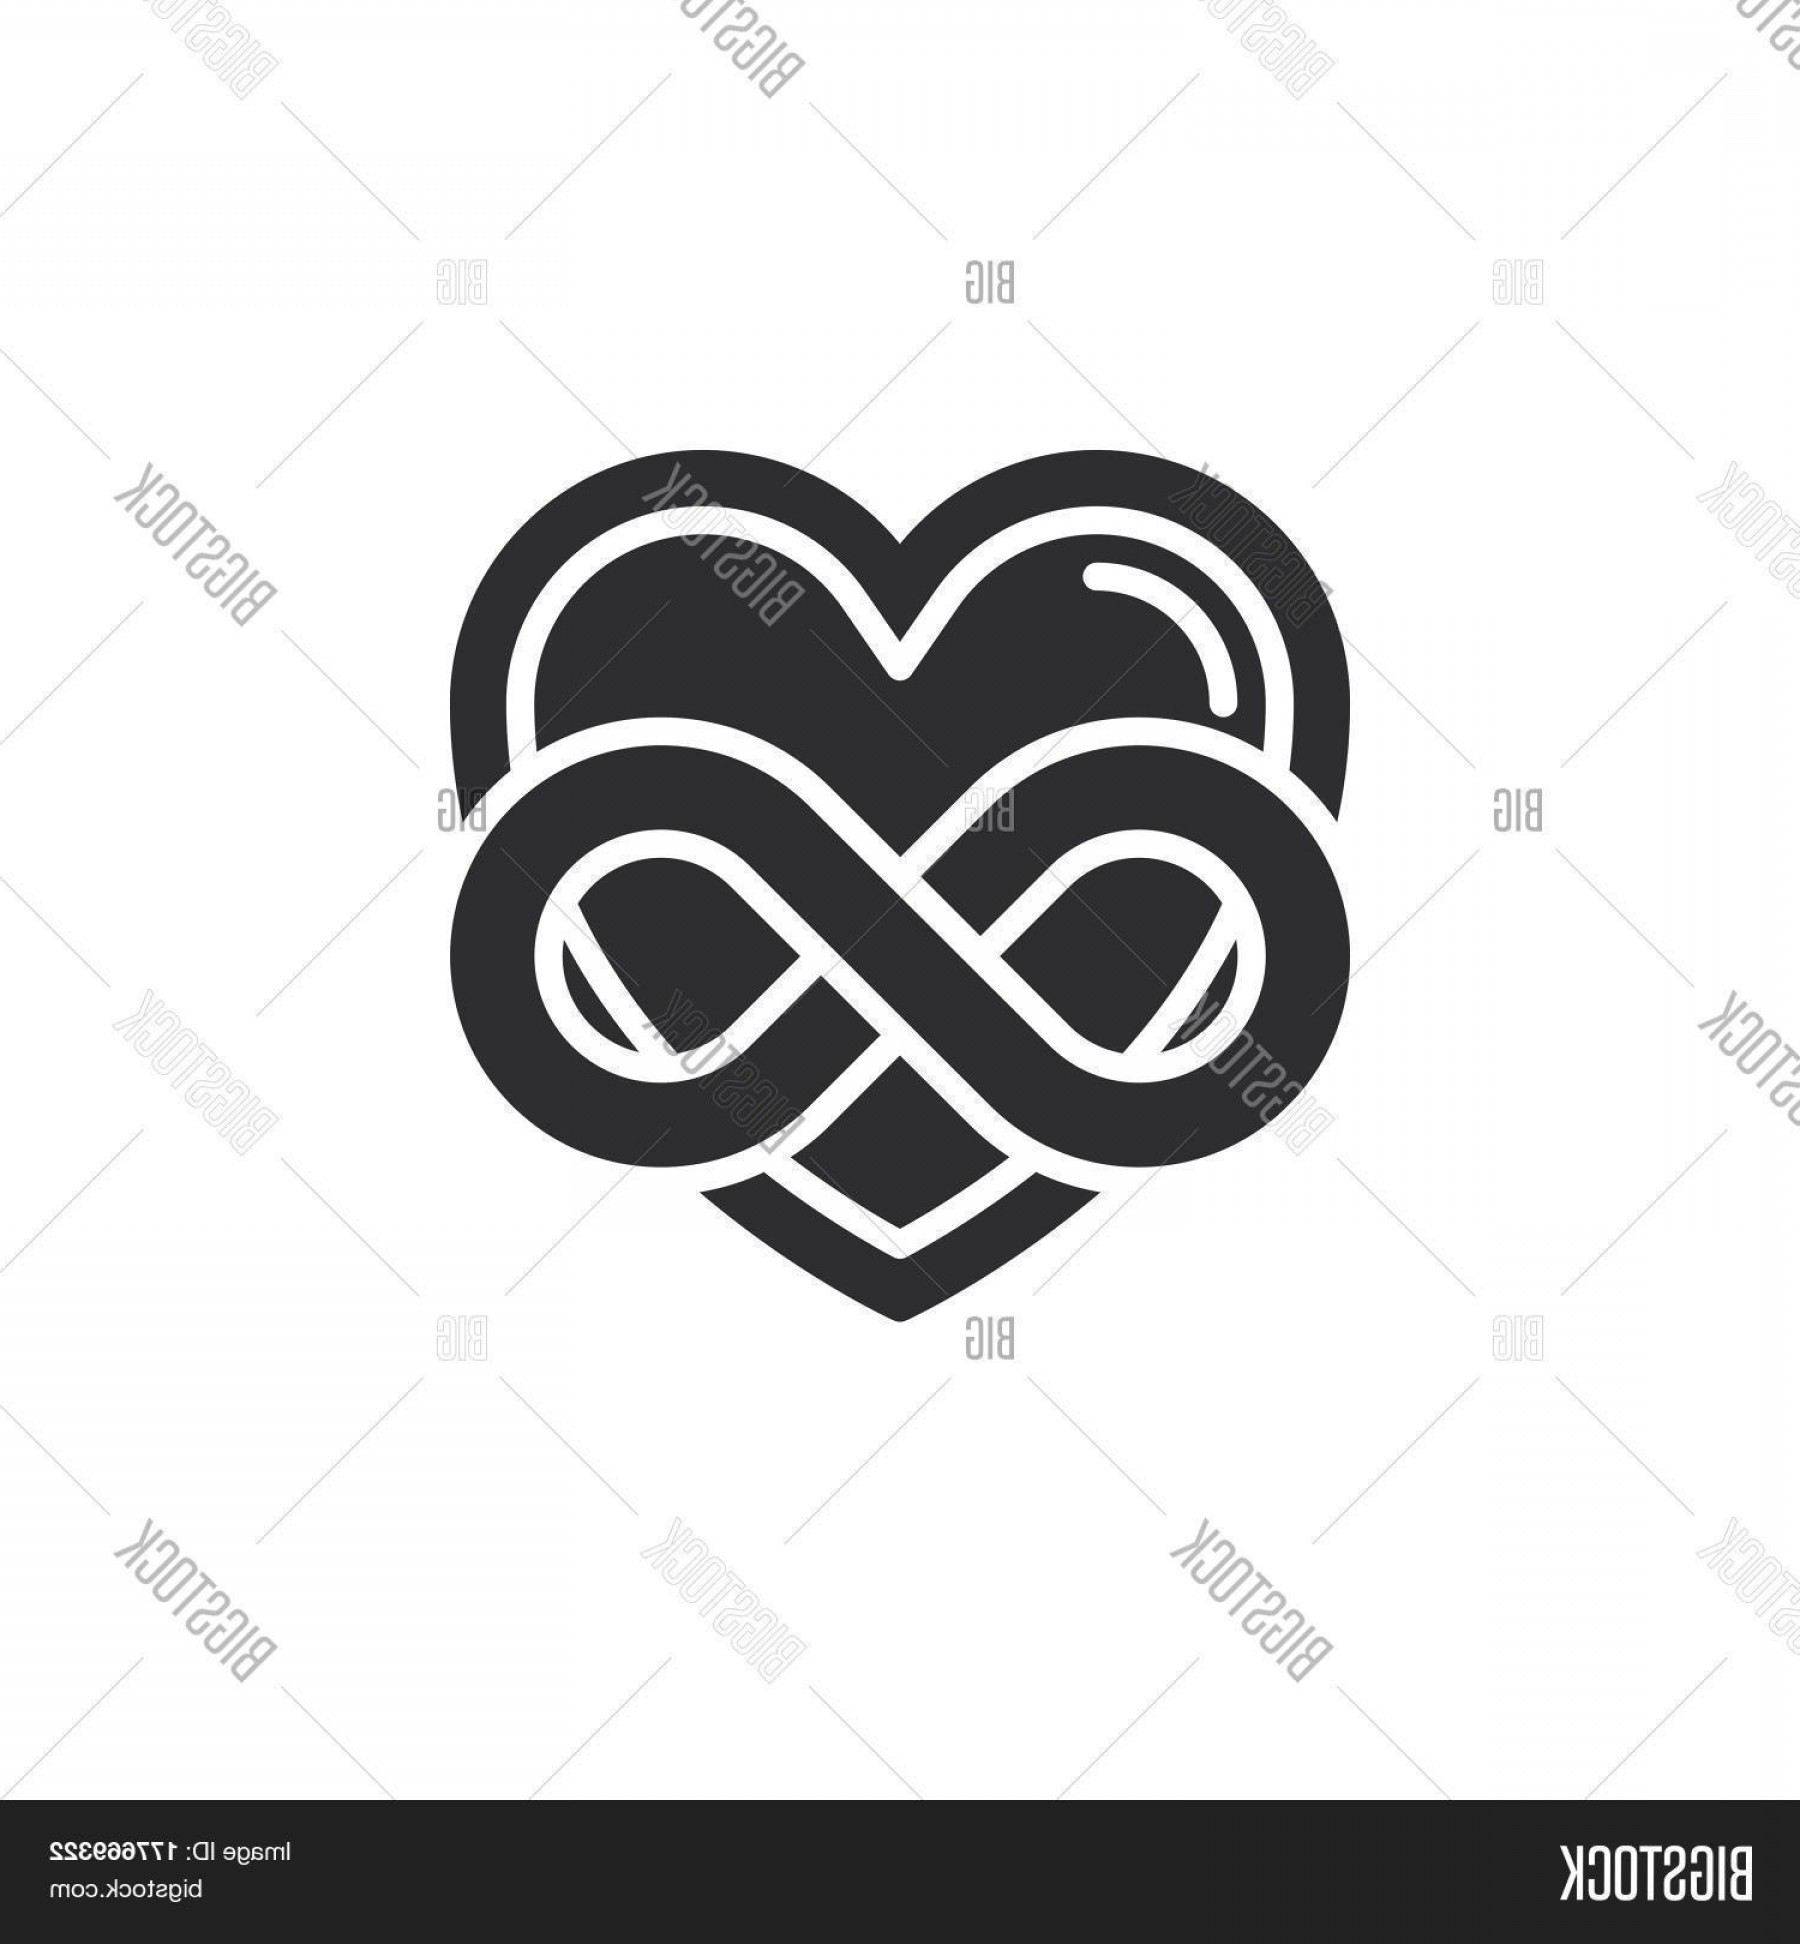 Vector Infinity Symbol Hearts: Stock Vector Eternal Love Icon Vector Filled Flat Sign Solid Pictogram Isolated On White Heart With Infinity Symbol Logo Illustration